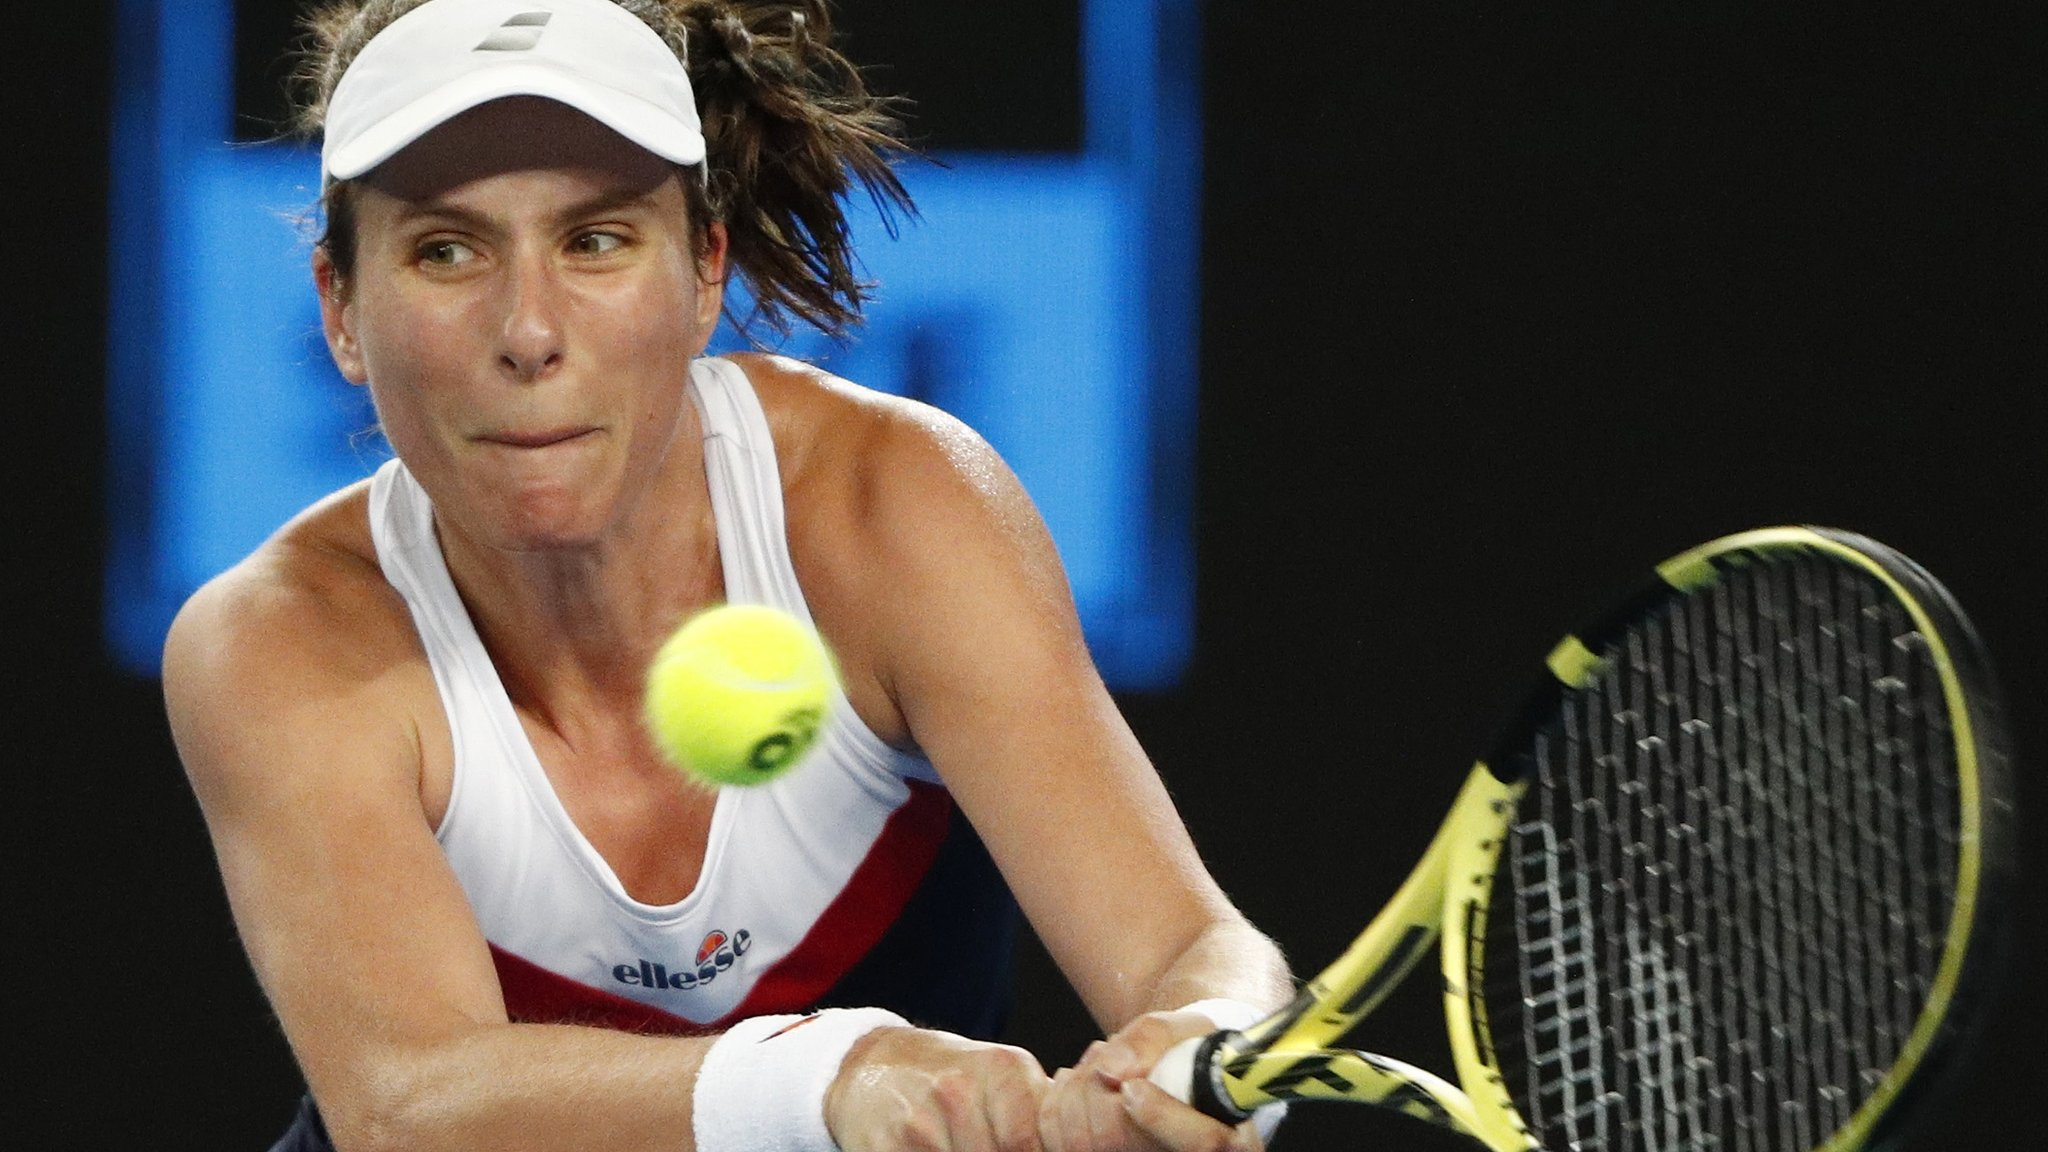 Britain's Konta loses to Muguruza in 'dangerous' 3am finish